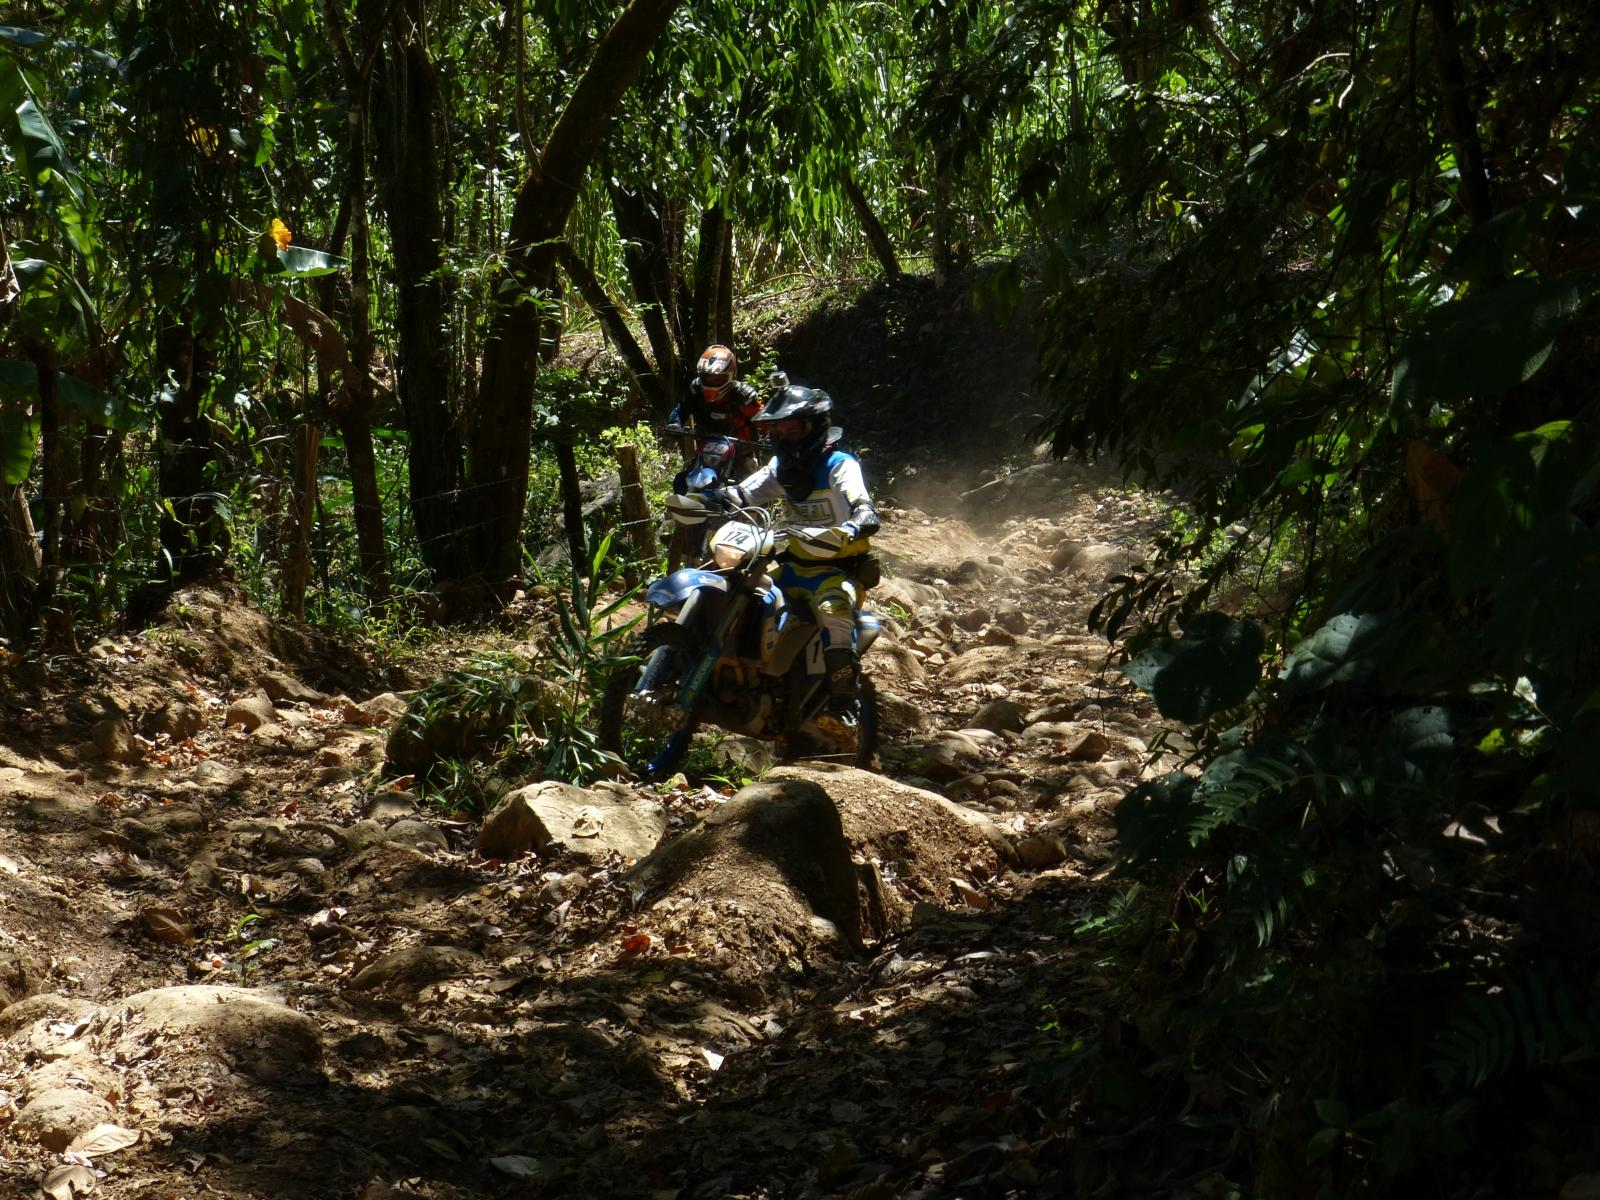 http://www.motorrad-bilder.at/slideshows/291/010638/enduro_offroad_costa_rica_021.jpg